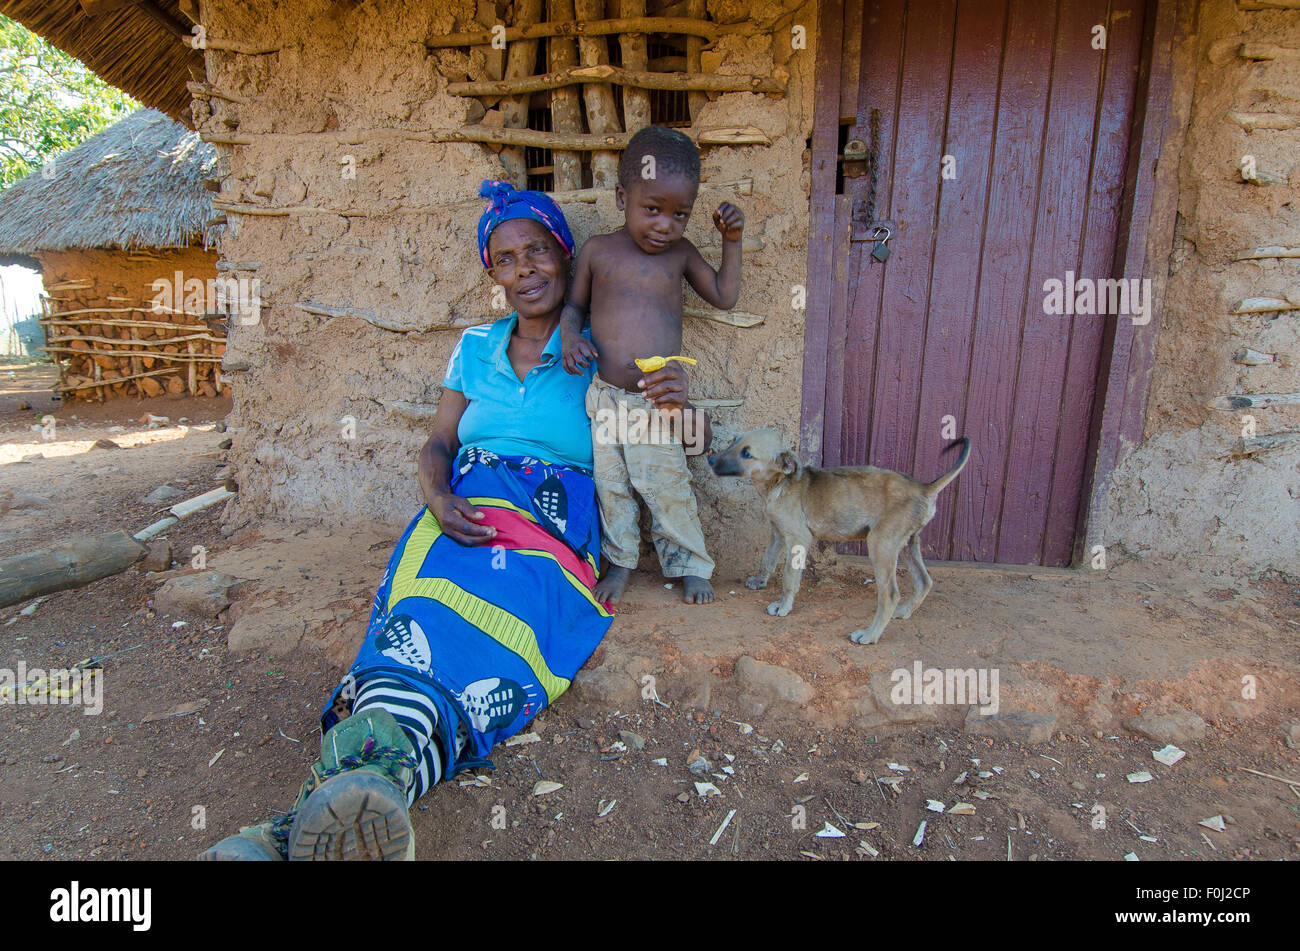 In the Kingdom of Swaziland near the Mozambican border, a child plays with his dog and grandma. - Stock Image